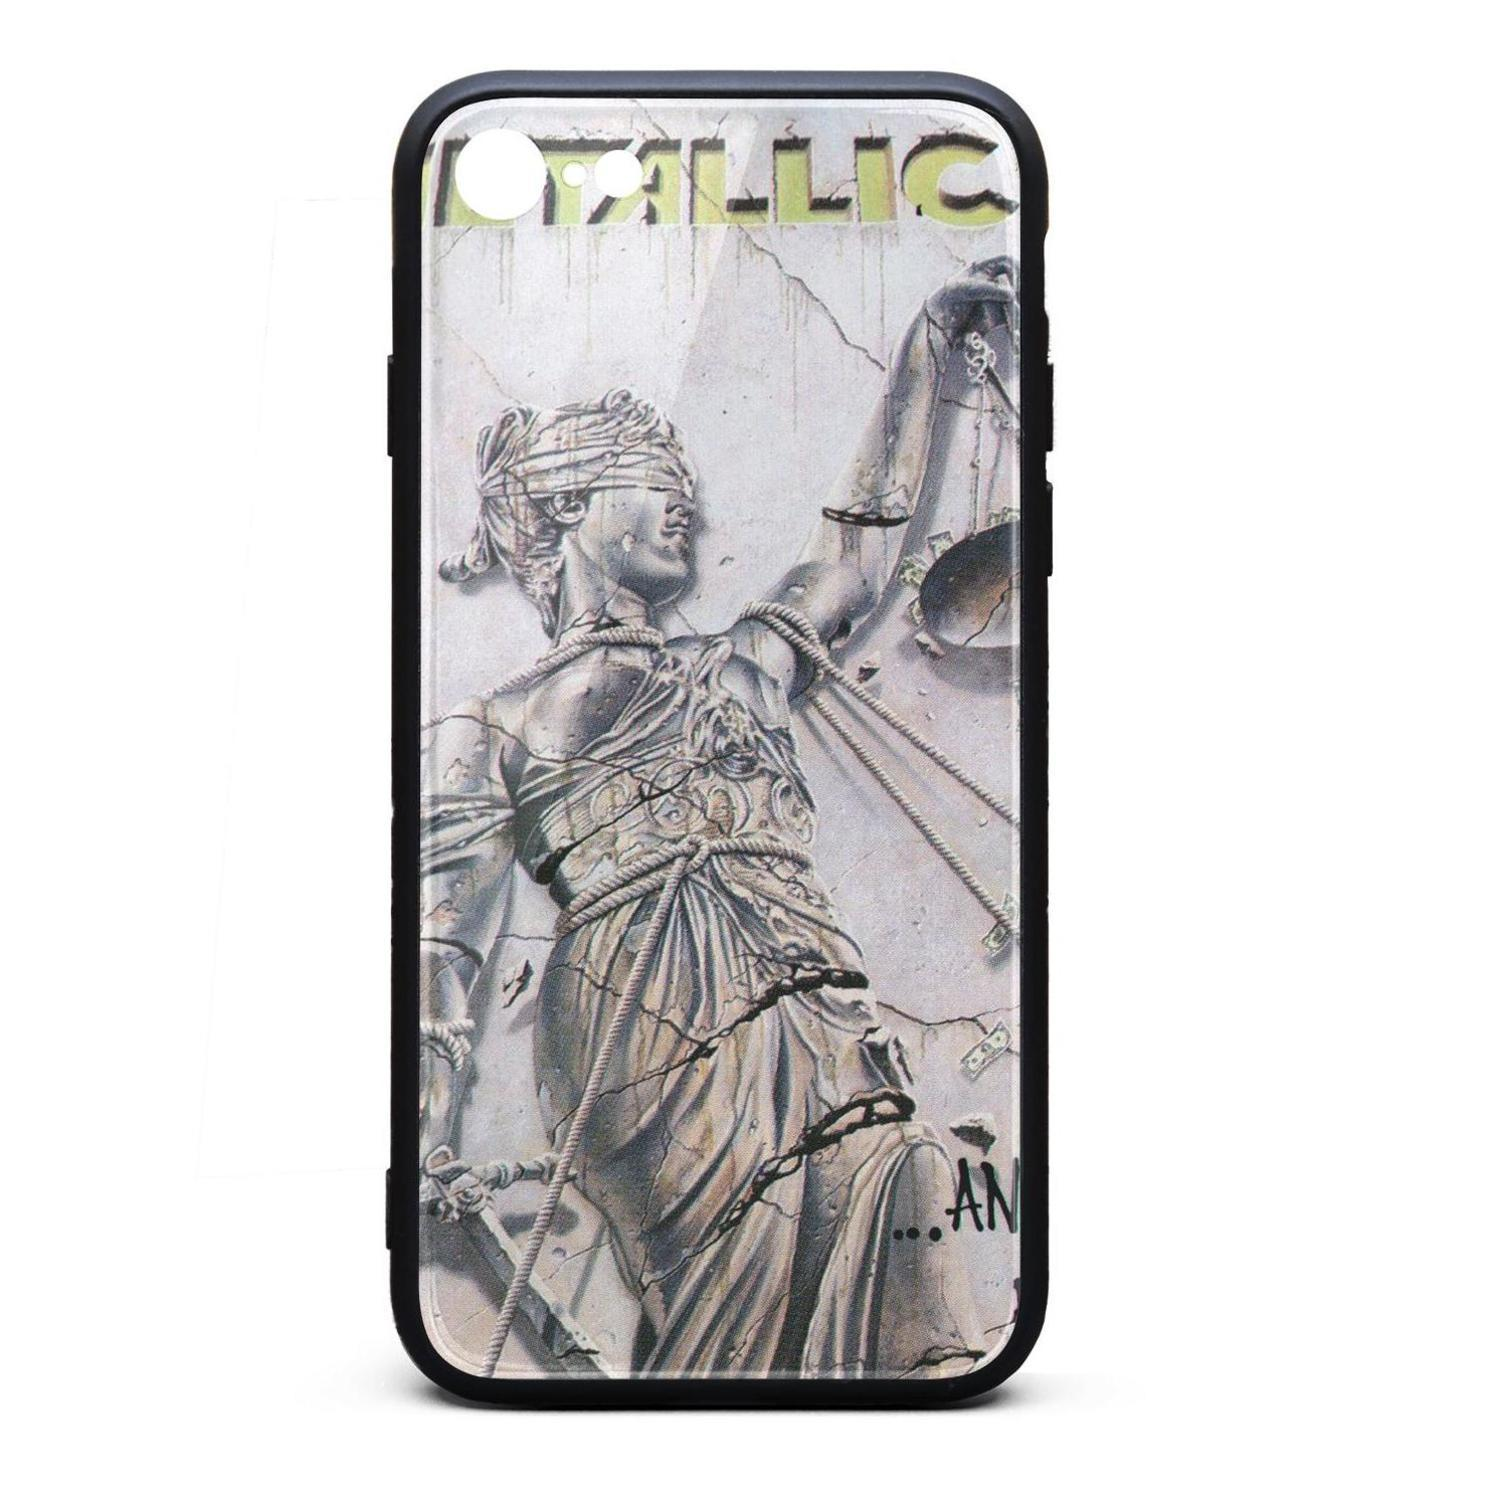 IPhone 6 Case,iPhone 6S Case Metallica And Justice For All front 9H Tempered Glass Cover TPU Bumper Shock Absorption Phone Case